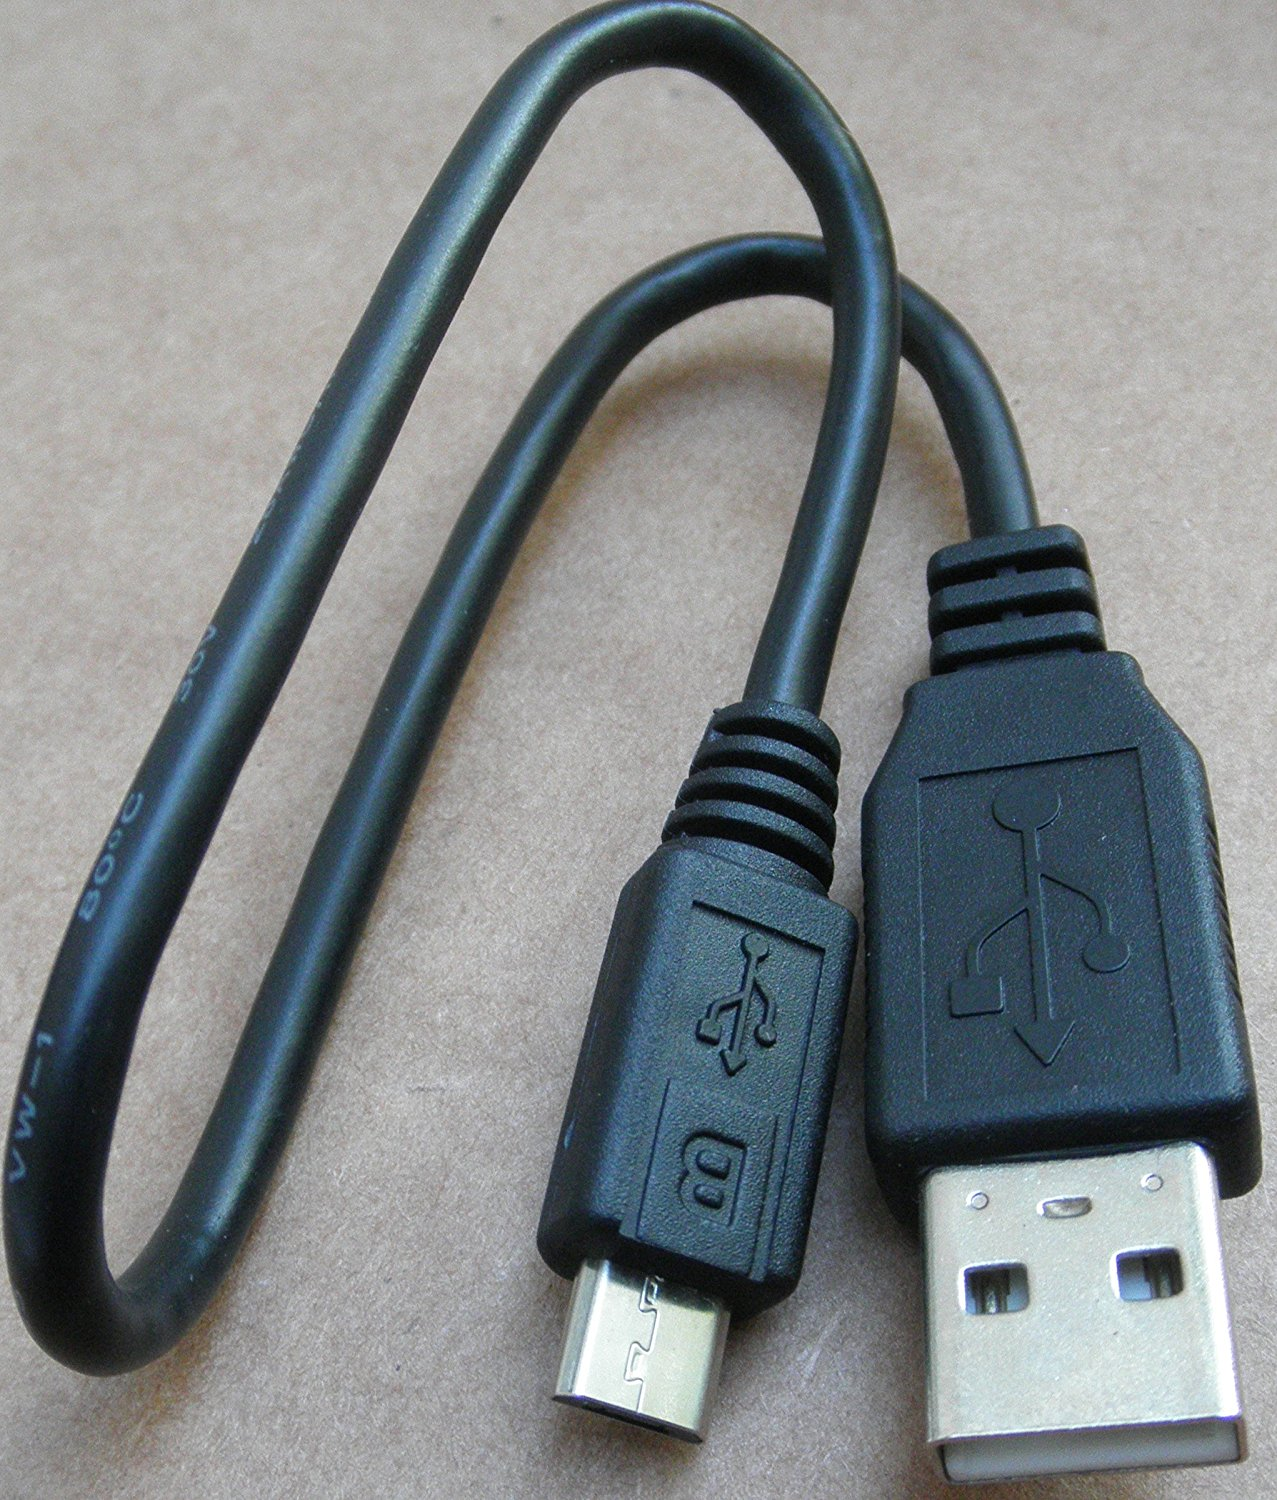 Genuine 1ft USB Cable for Logitech BH870 Wireless Bluetooth Headset - Bluetooth earpiece NOT included